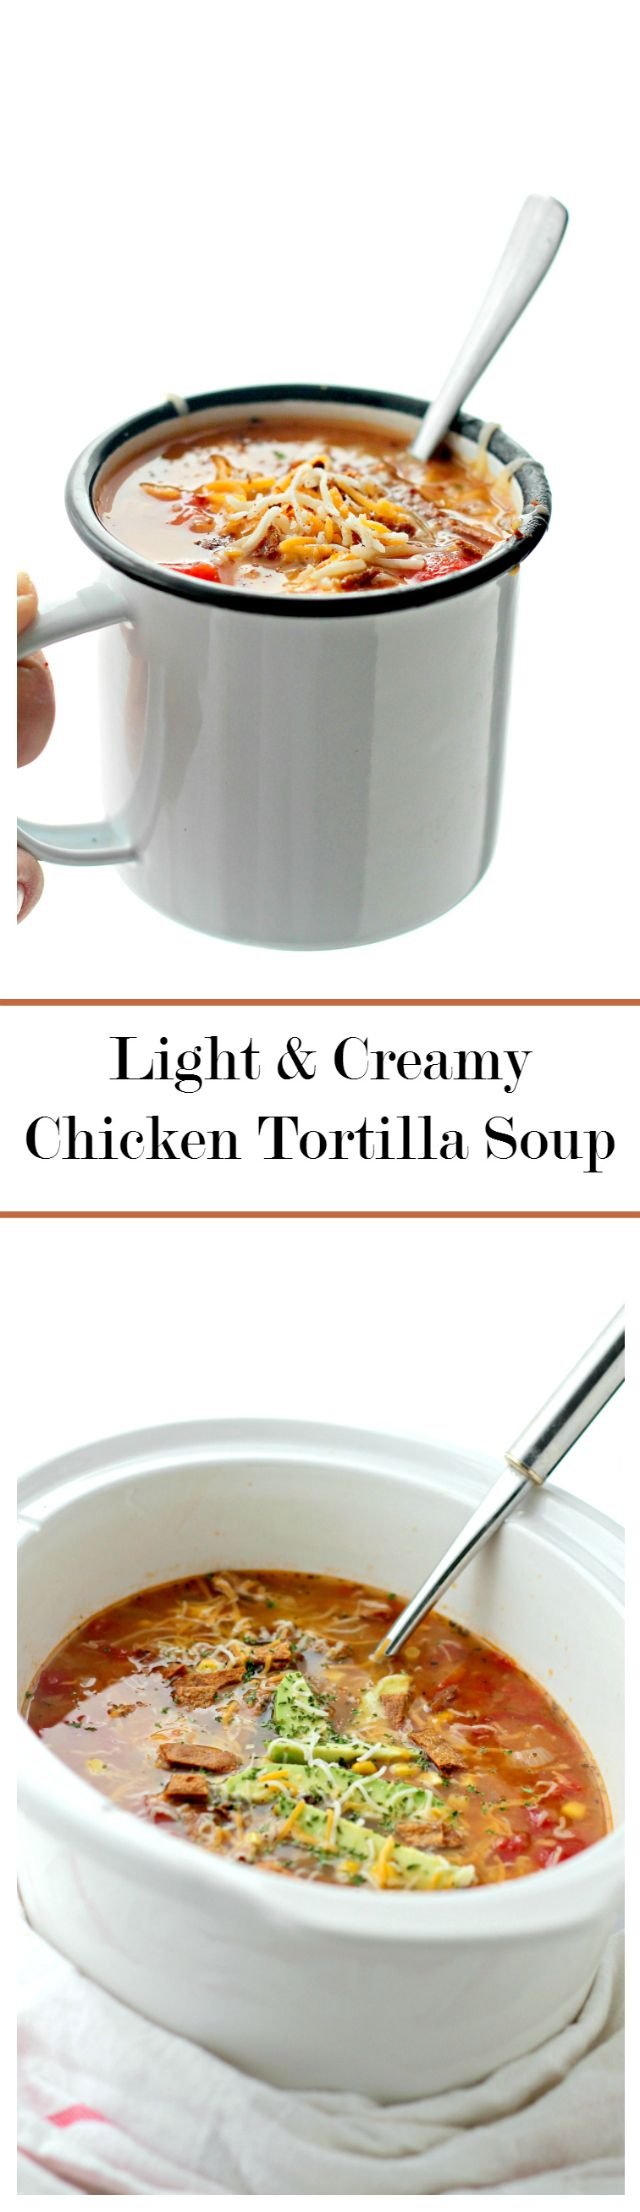 Light and Creamy Chicken Tortilla Soup | www.diethood.com | This hearty Chicken Tortilla Soup is filled with shredded chicken, tomatoes, corn and creamy refried beans. All the creamy comfort without the cream!